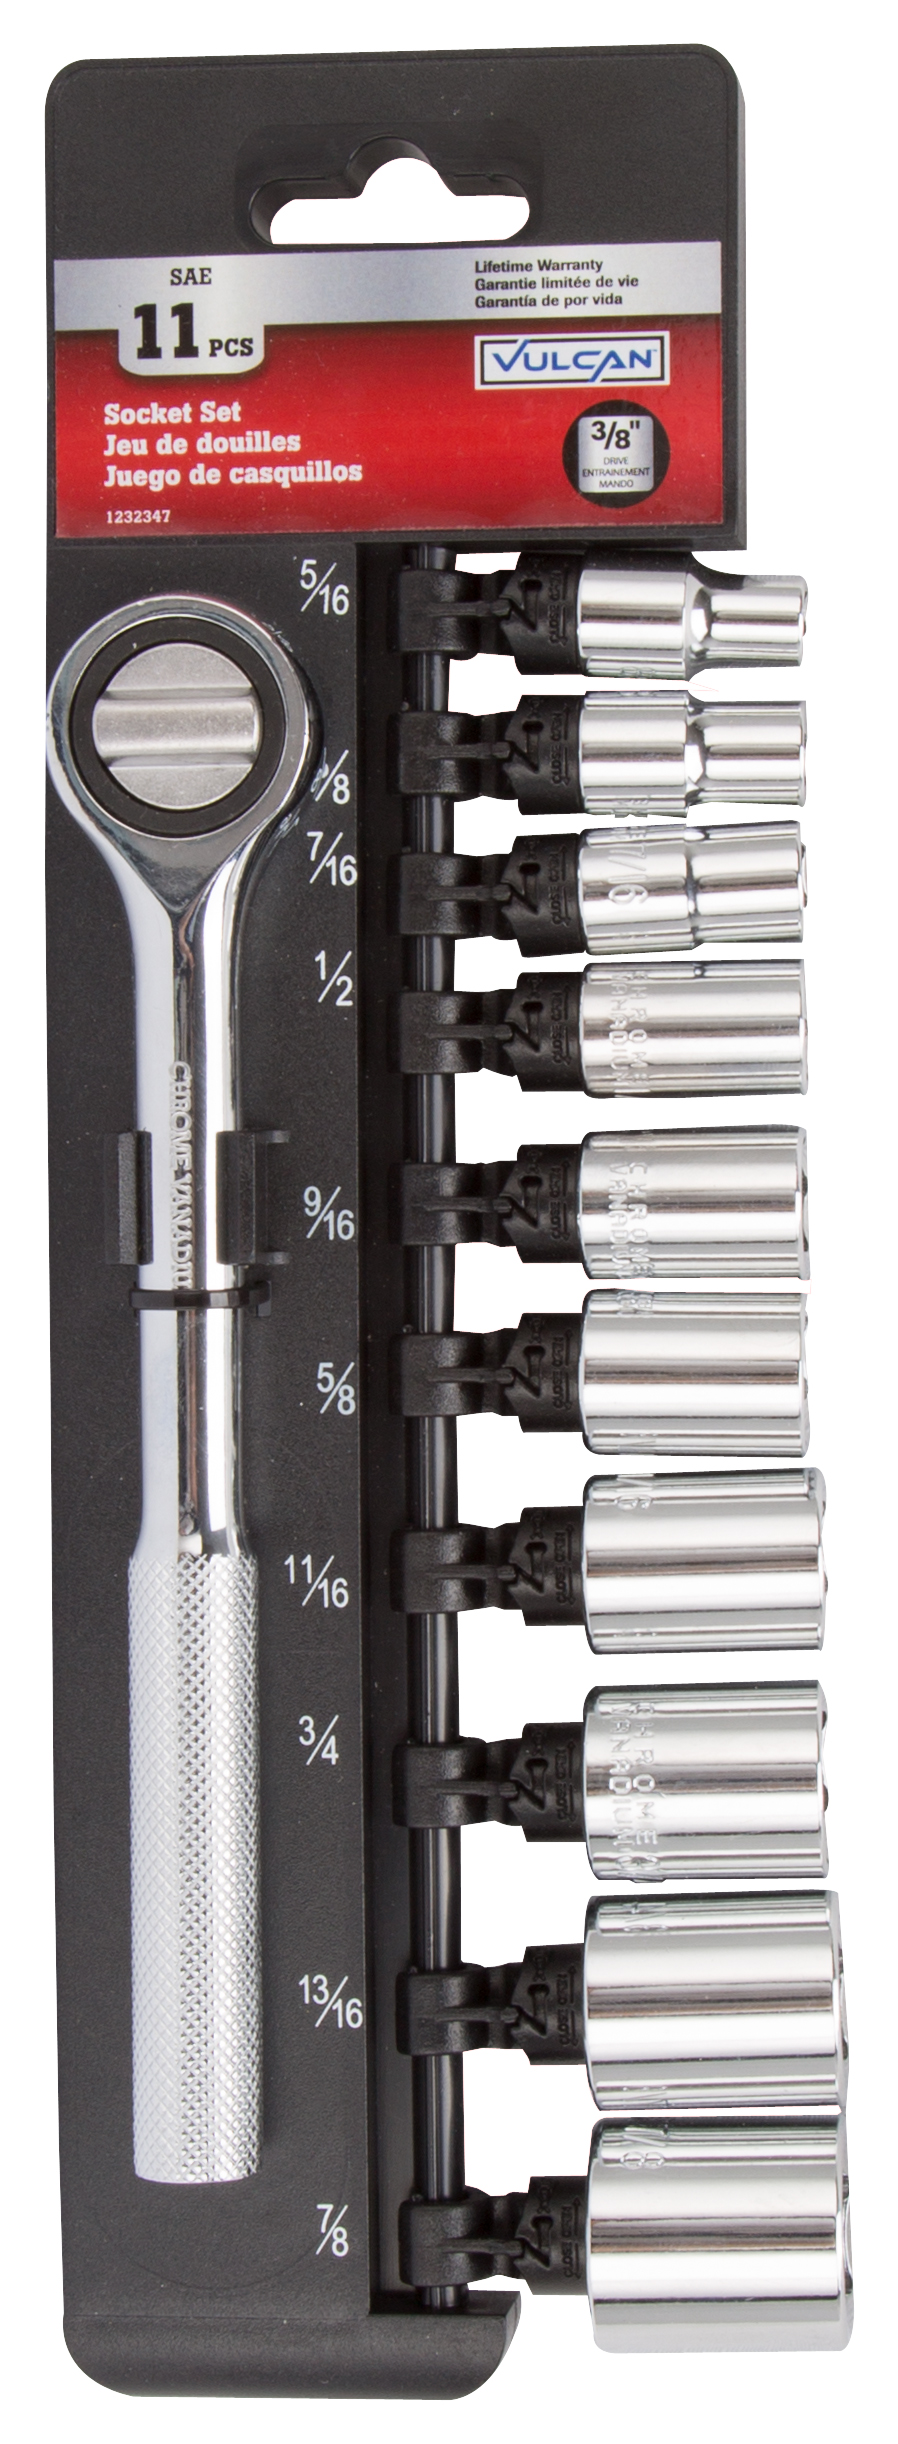 Picture of Vulcan 13PC-3S Socket Set, Chrome Vanadium Steel, Specifications: 3/8 in Drive Size